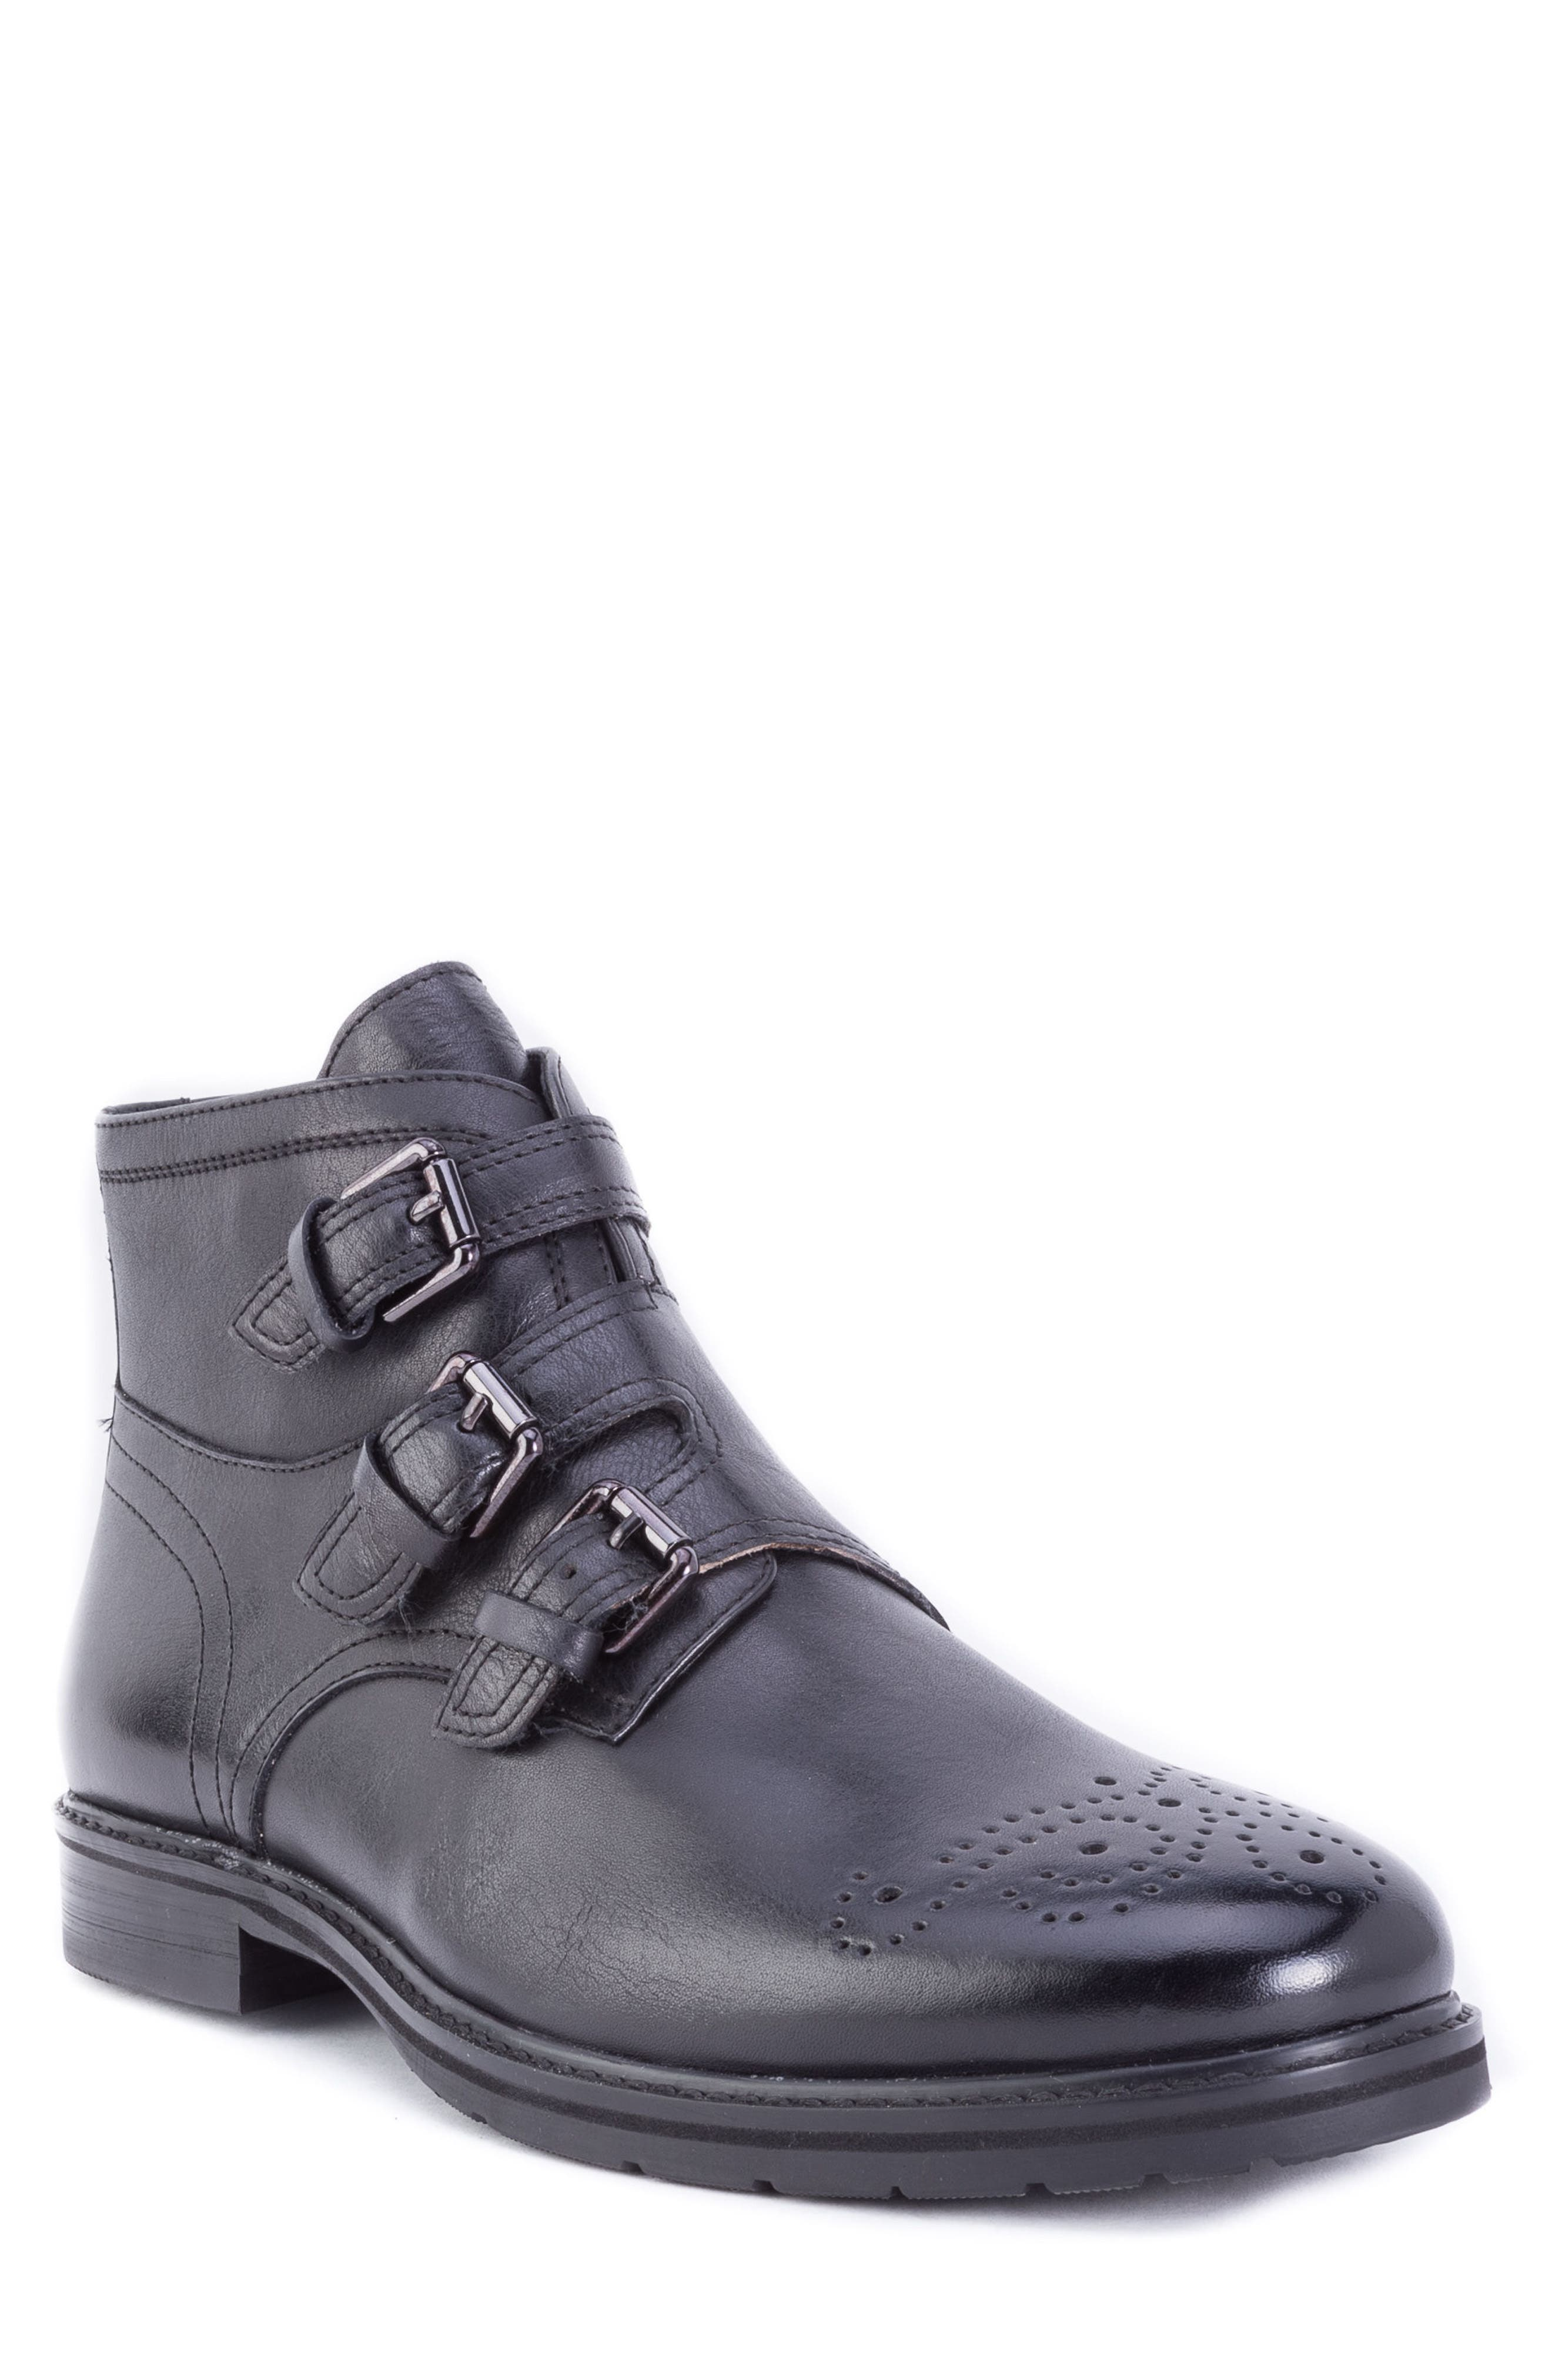 Malden Three Buckle Boot,                             Main thumbnail 1, color,                             BLACK LEATHER